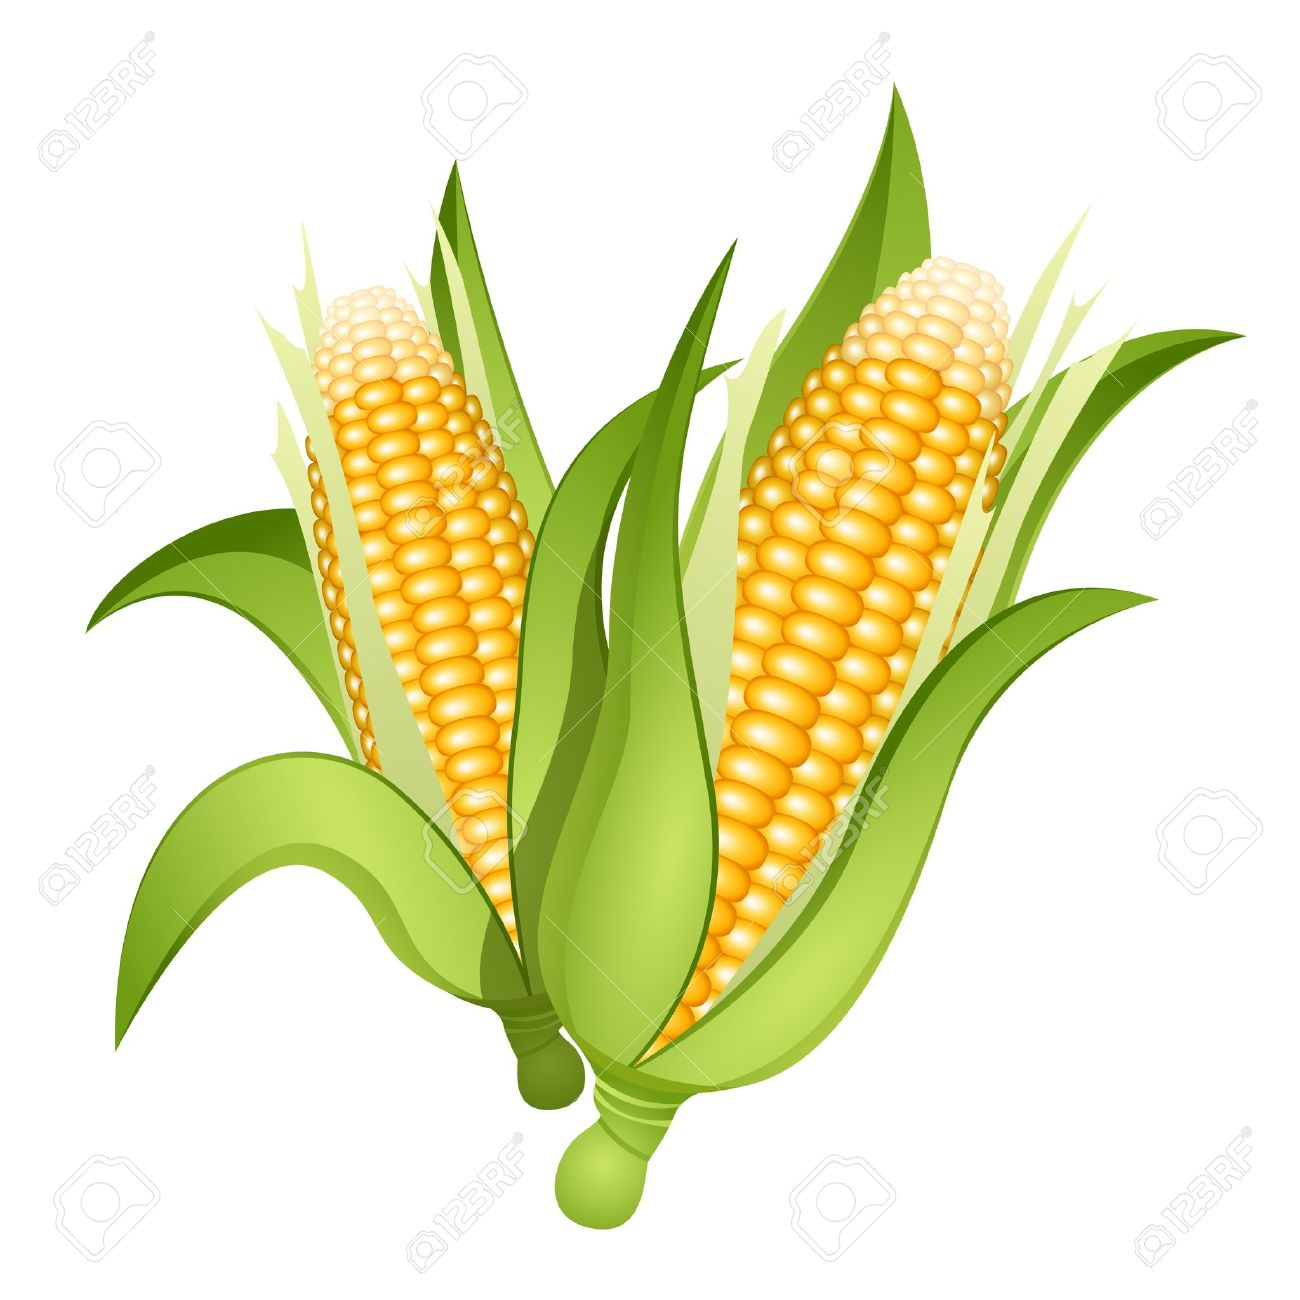 3 865 corn cob stock vector illustration and royalty free corn cob rh 123rf com corn on the cob clip art black and white corn on the cob clip art free